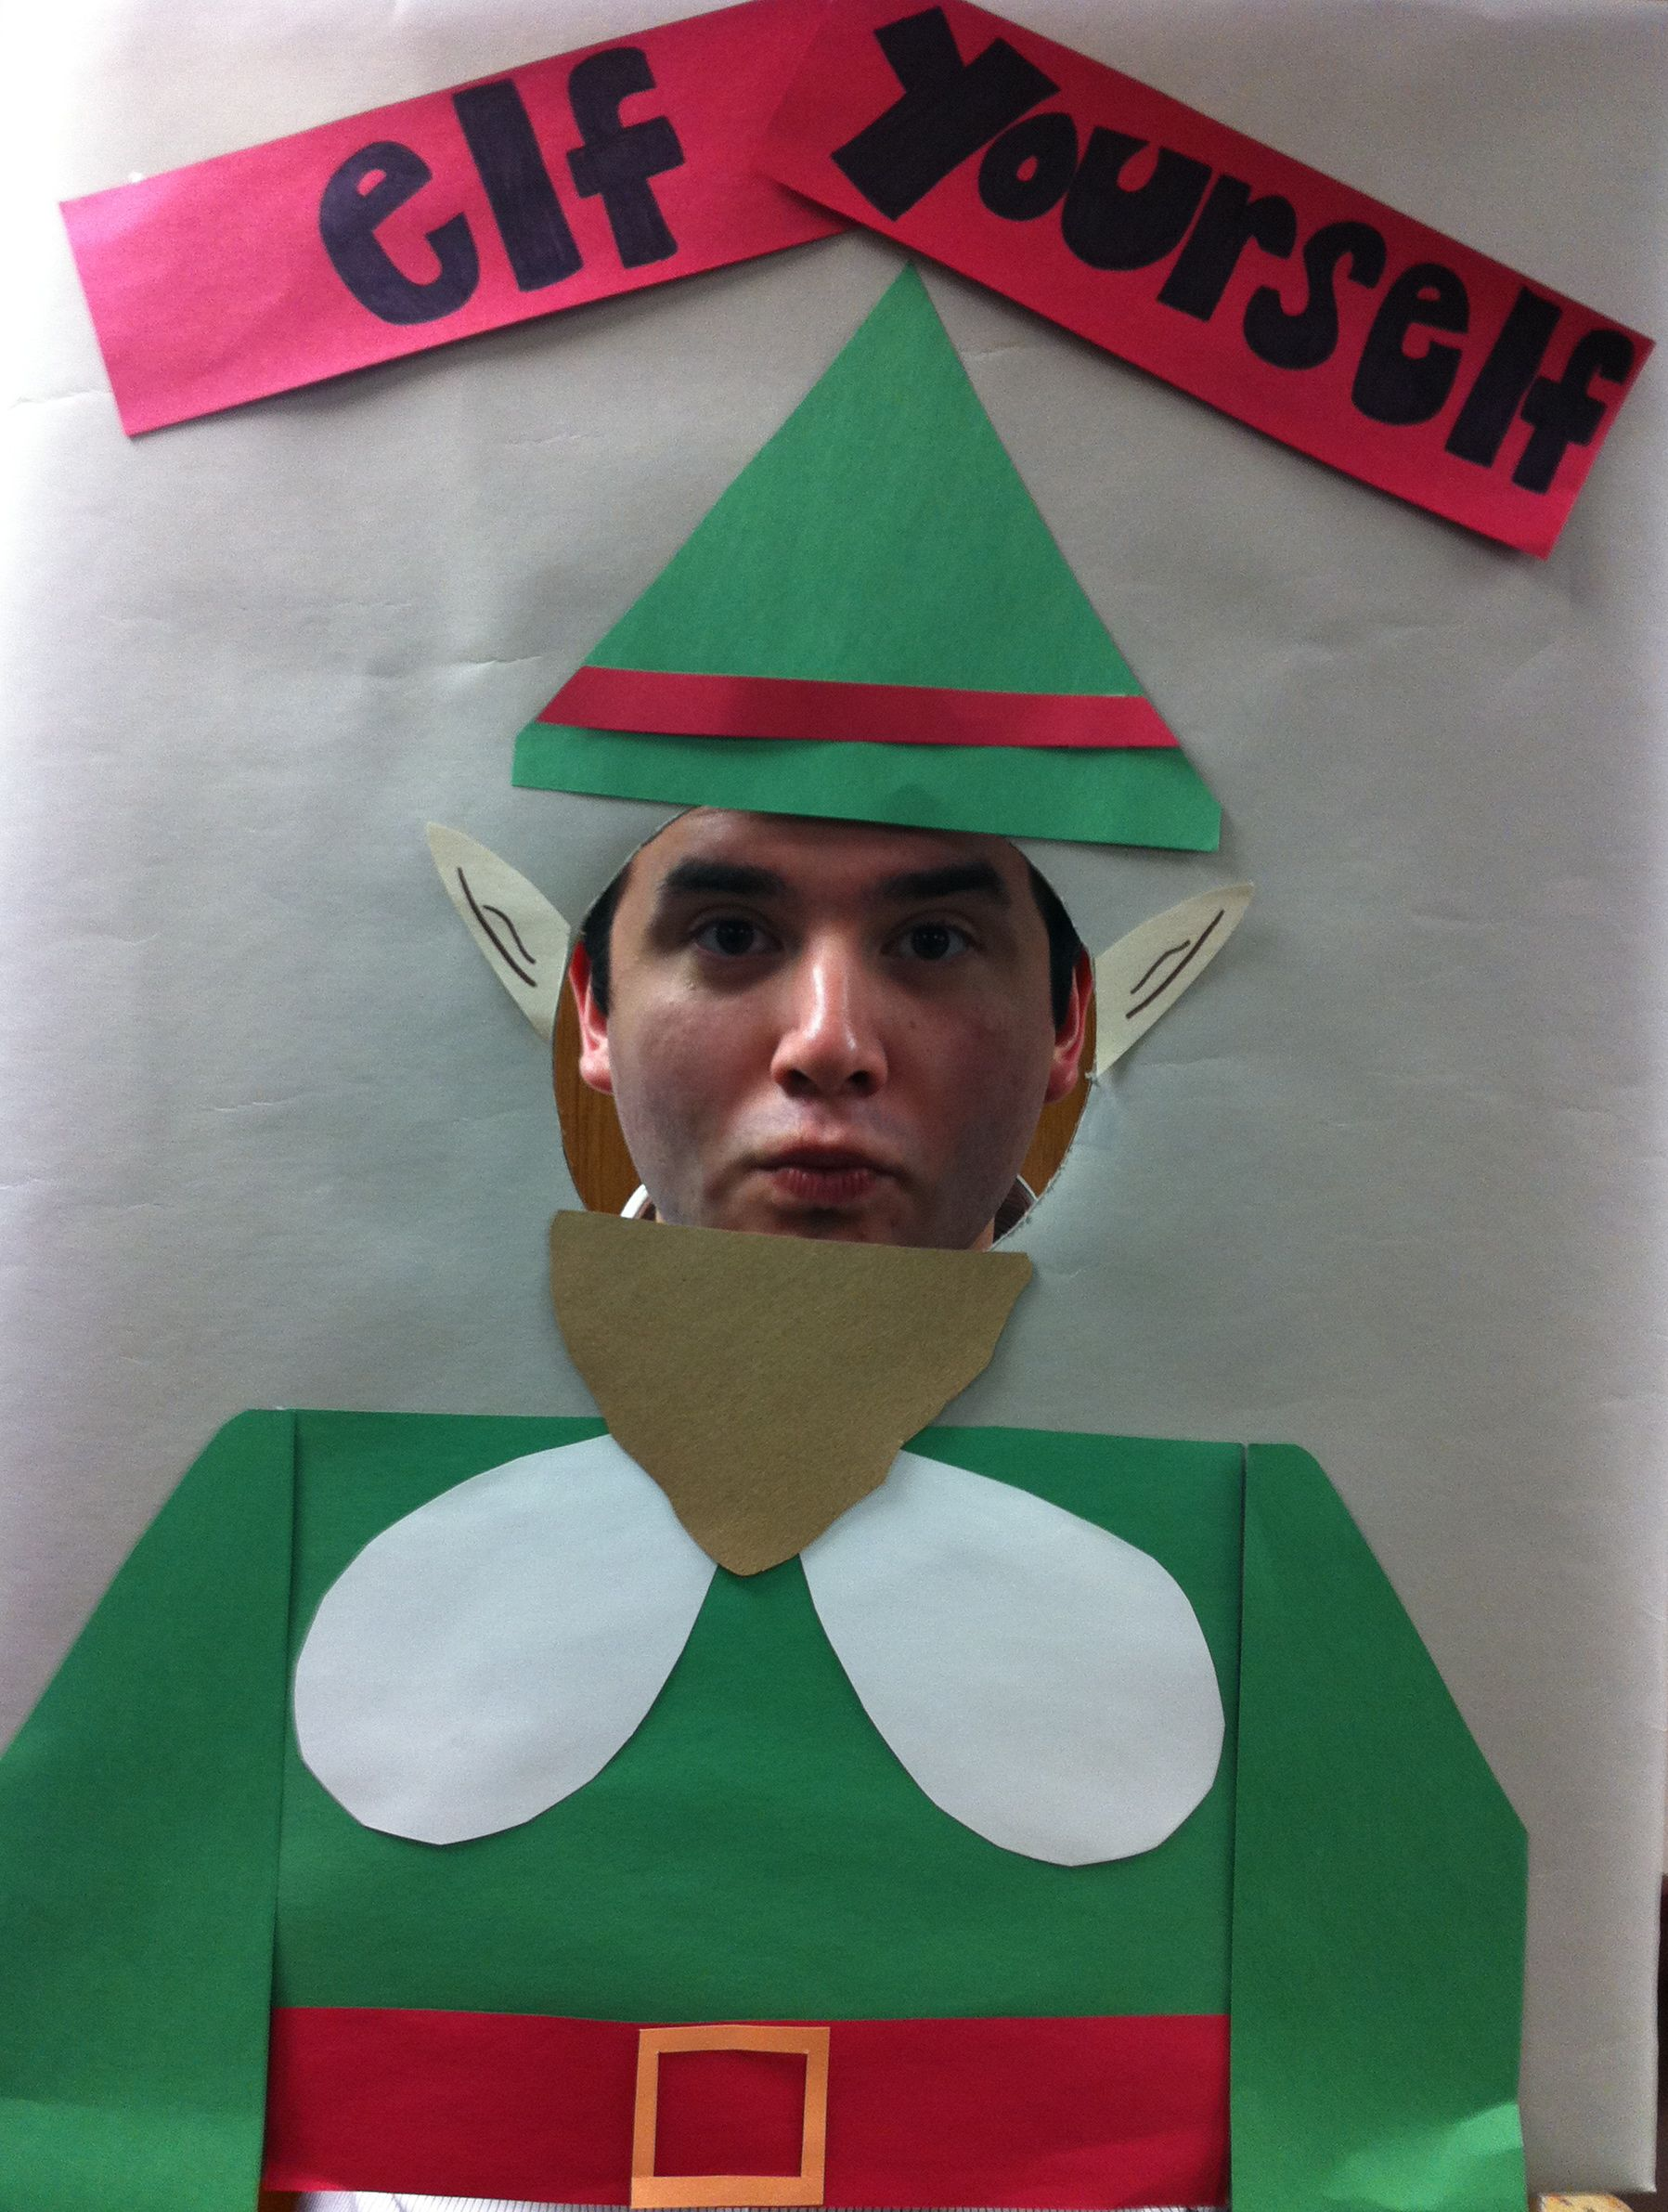 last christmas made an elf yourself for our office christmas